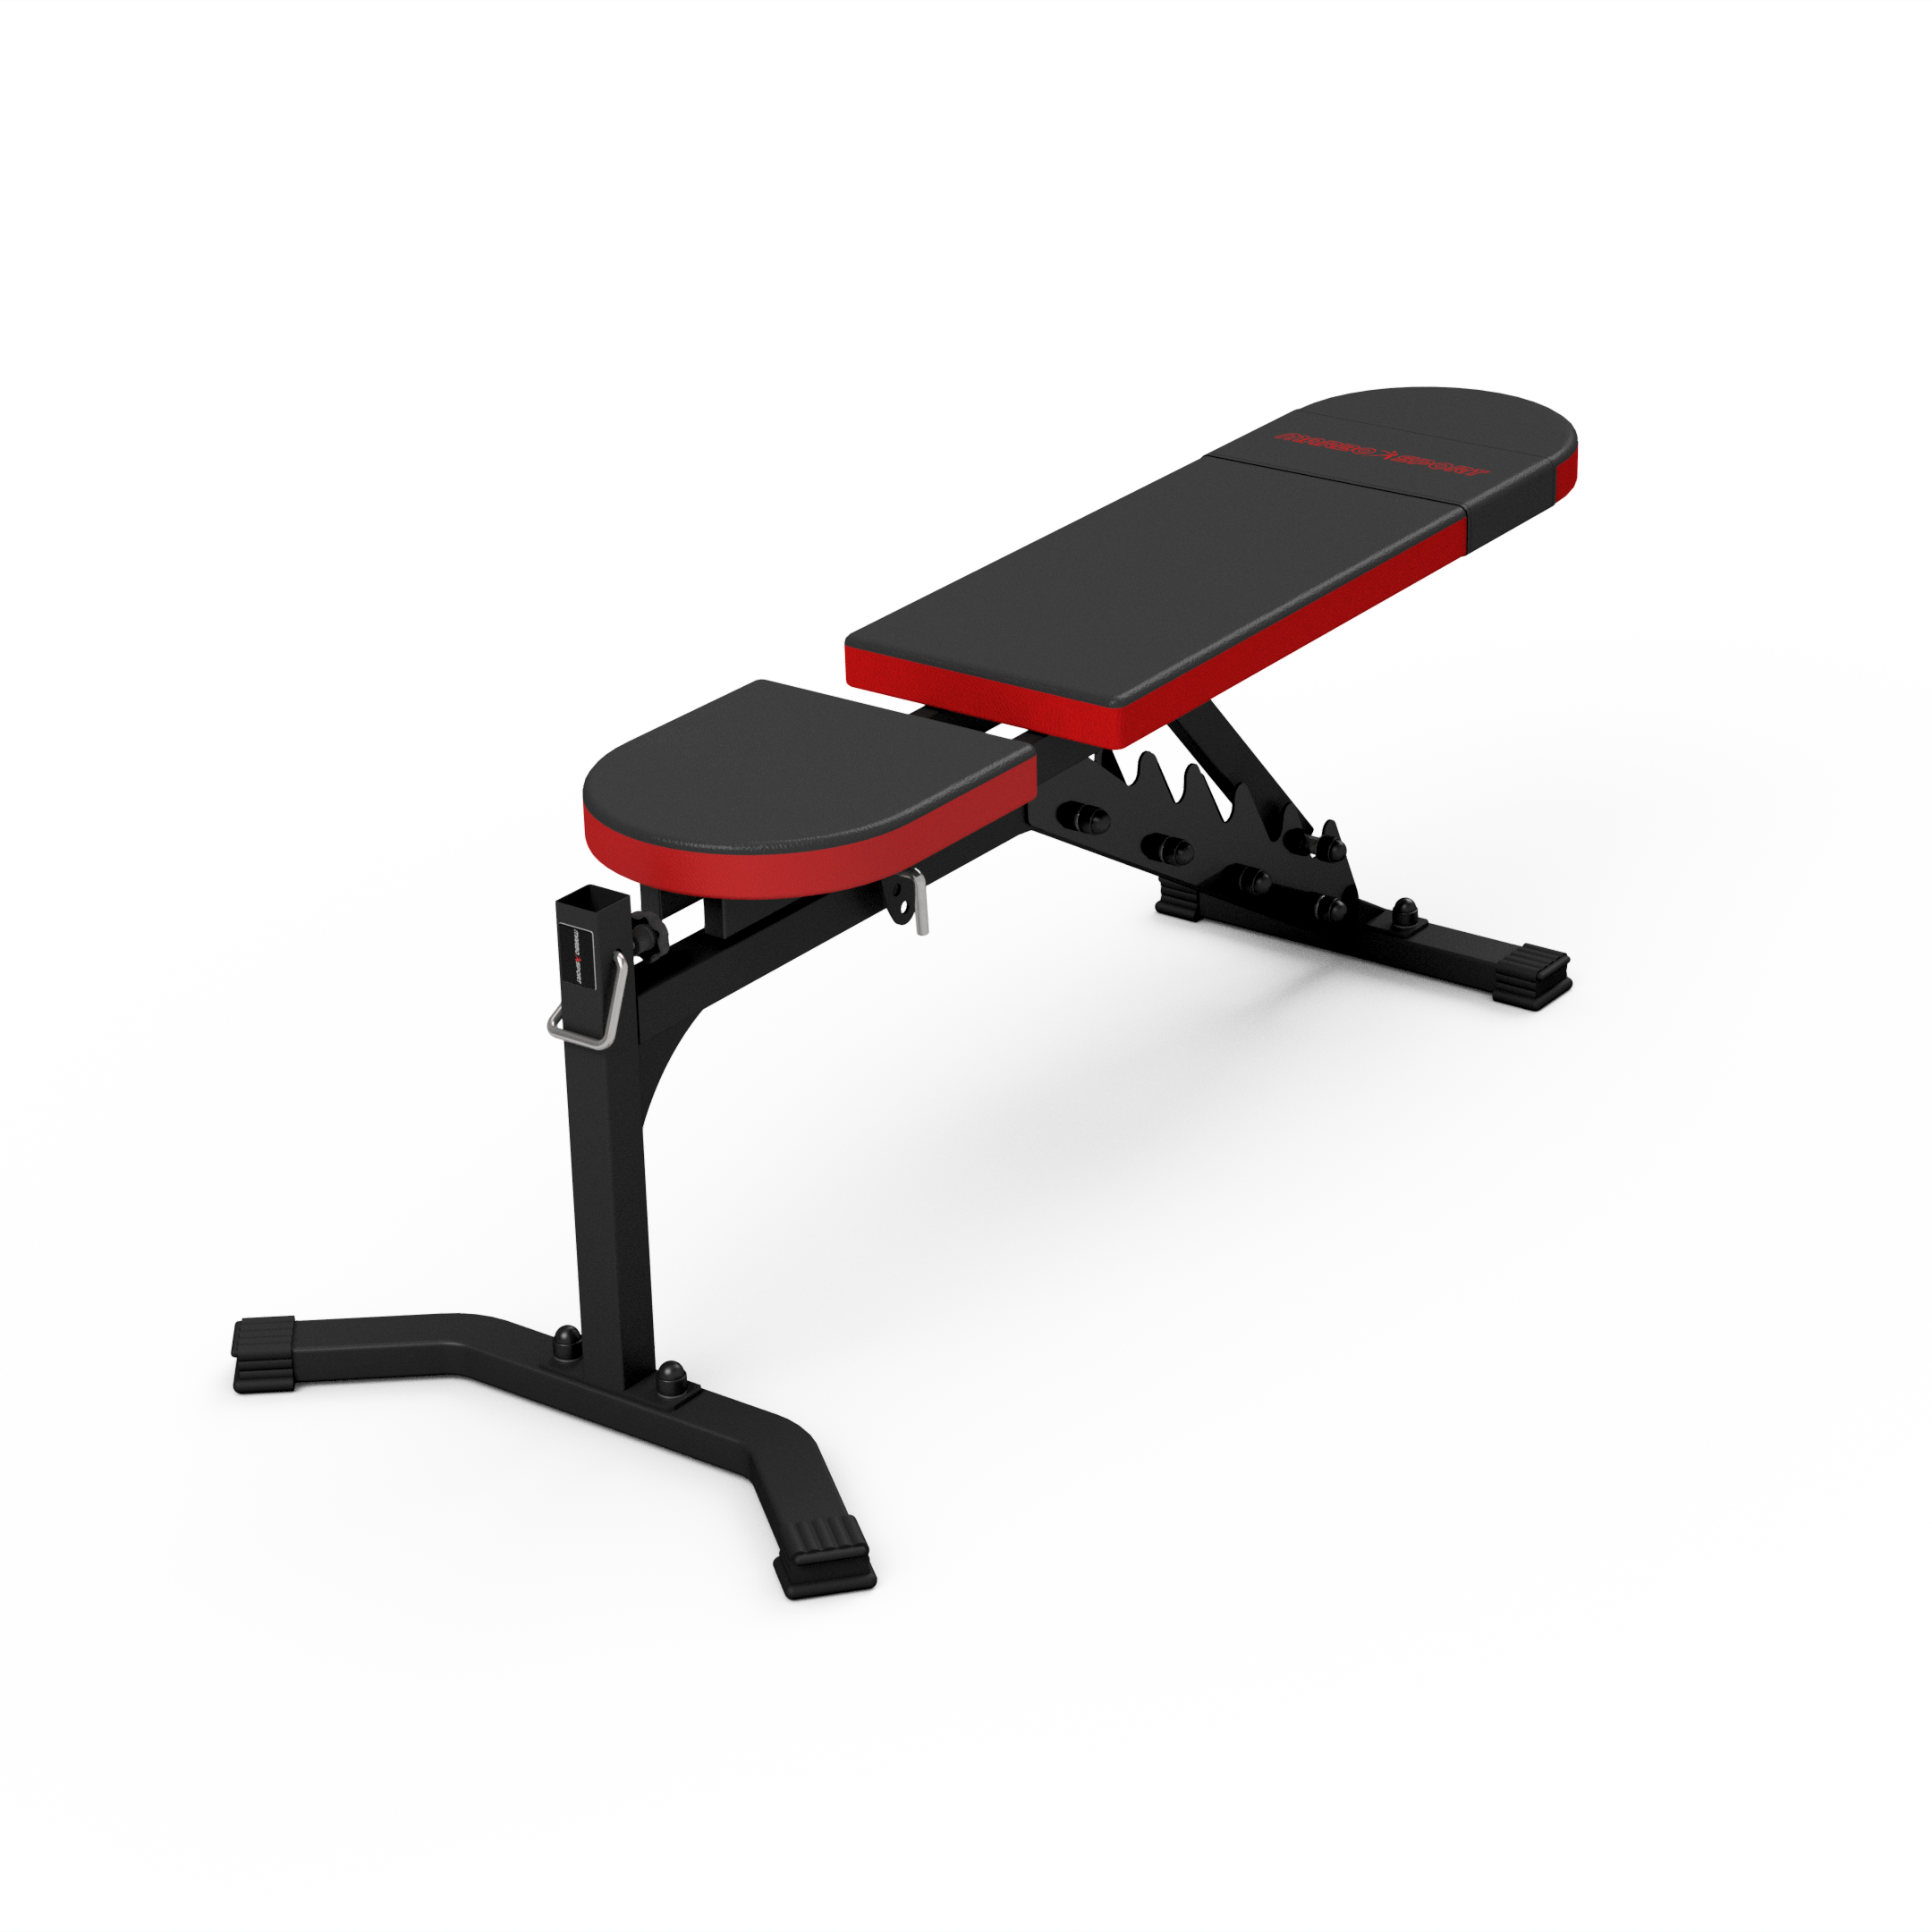 Adjustable Bench With Adapter Mh L115 Marbo Sport B2b Marbo